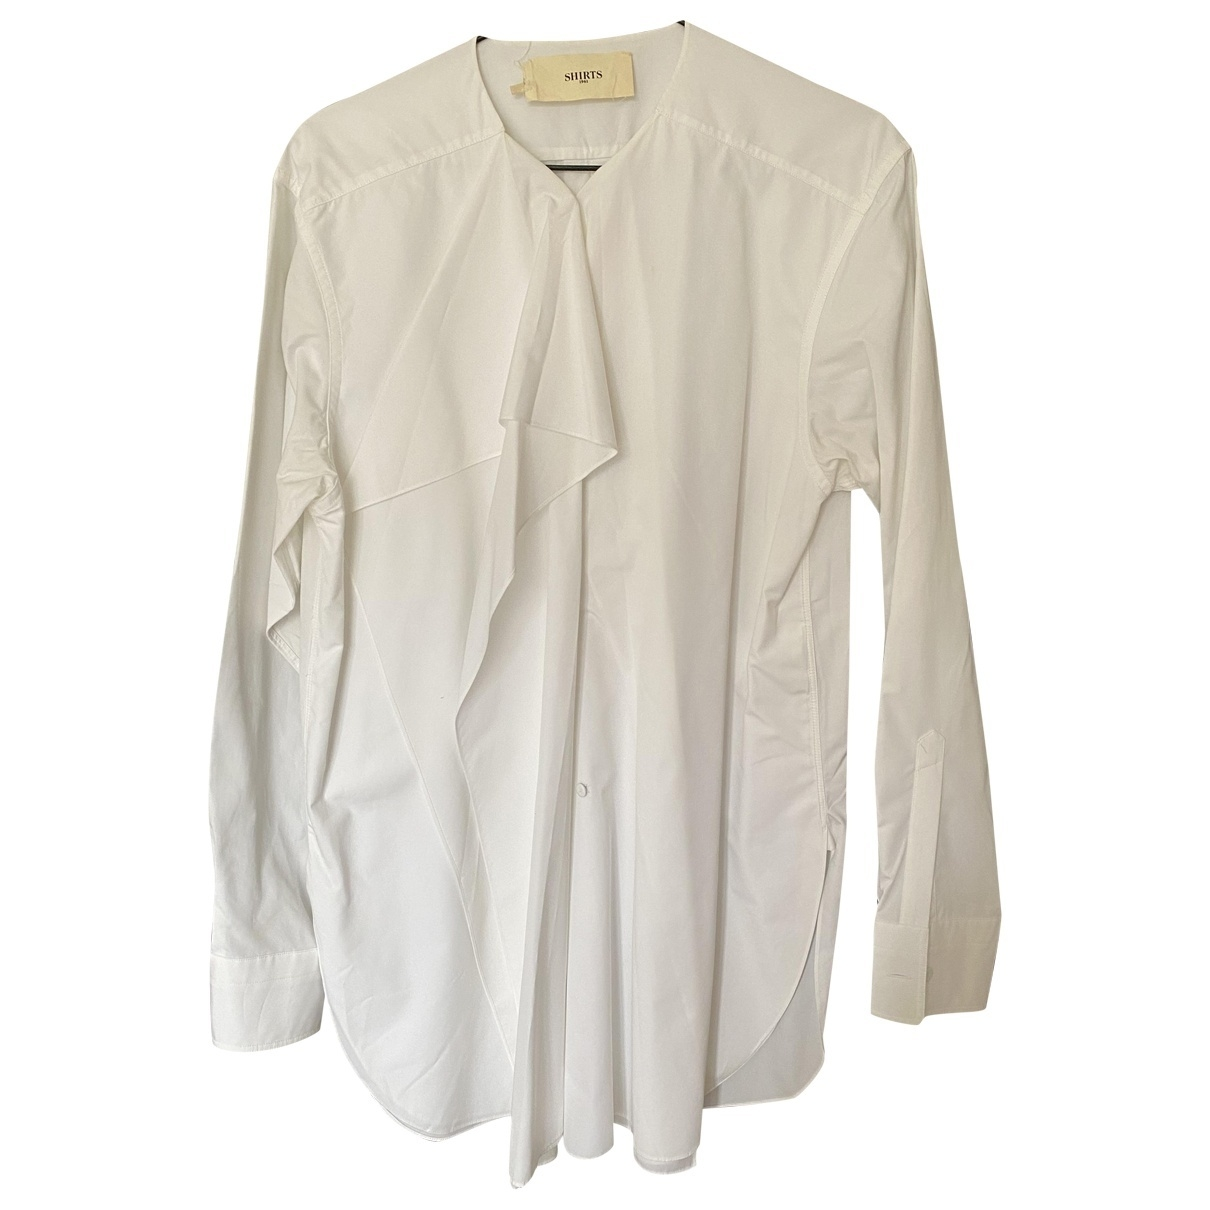 Ports 1961 \N White Cotton  top for Women 40 IT